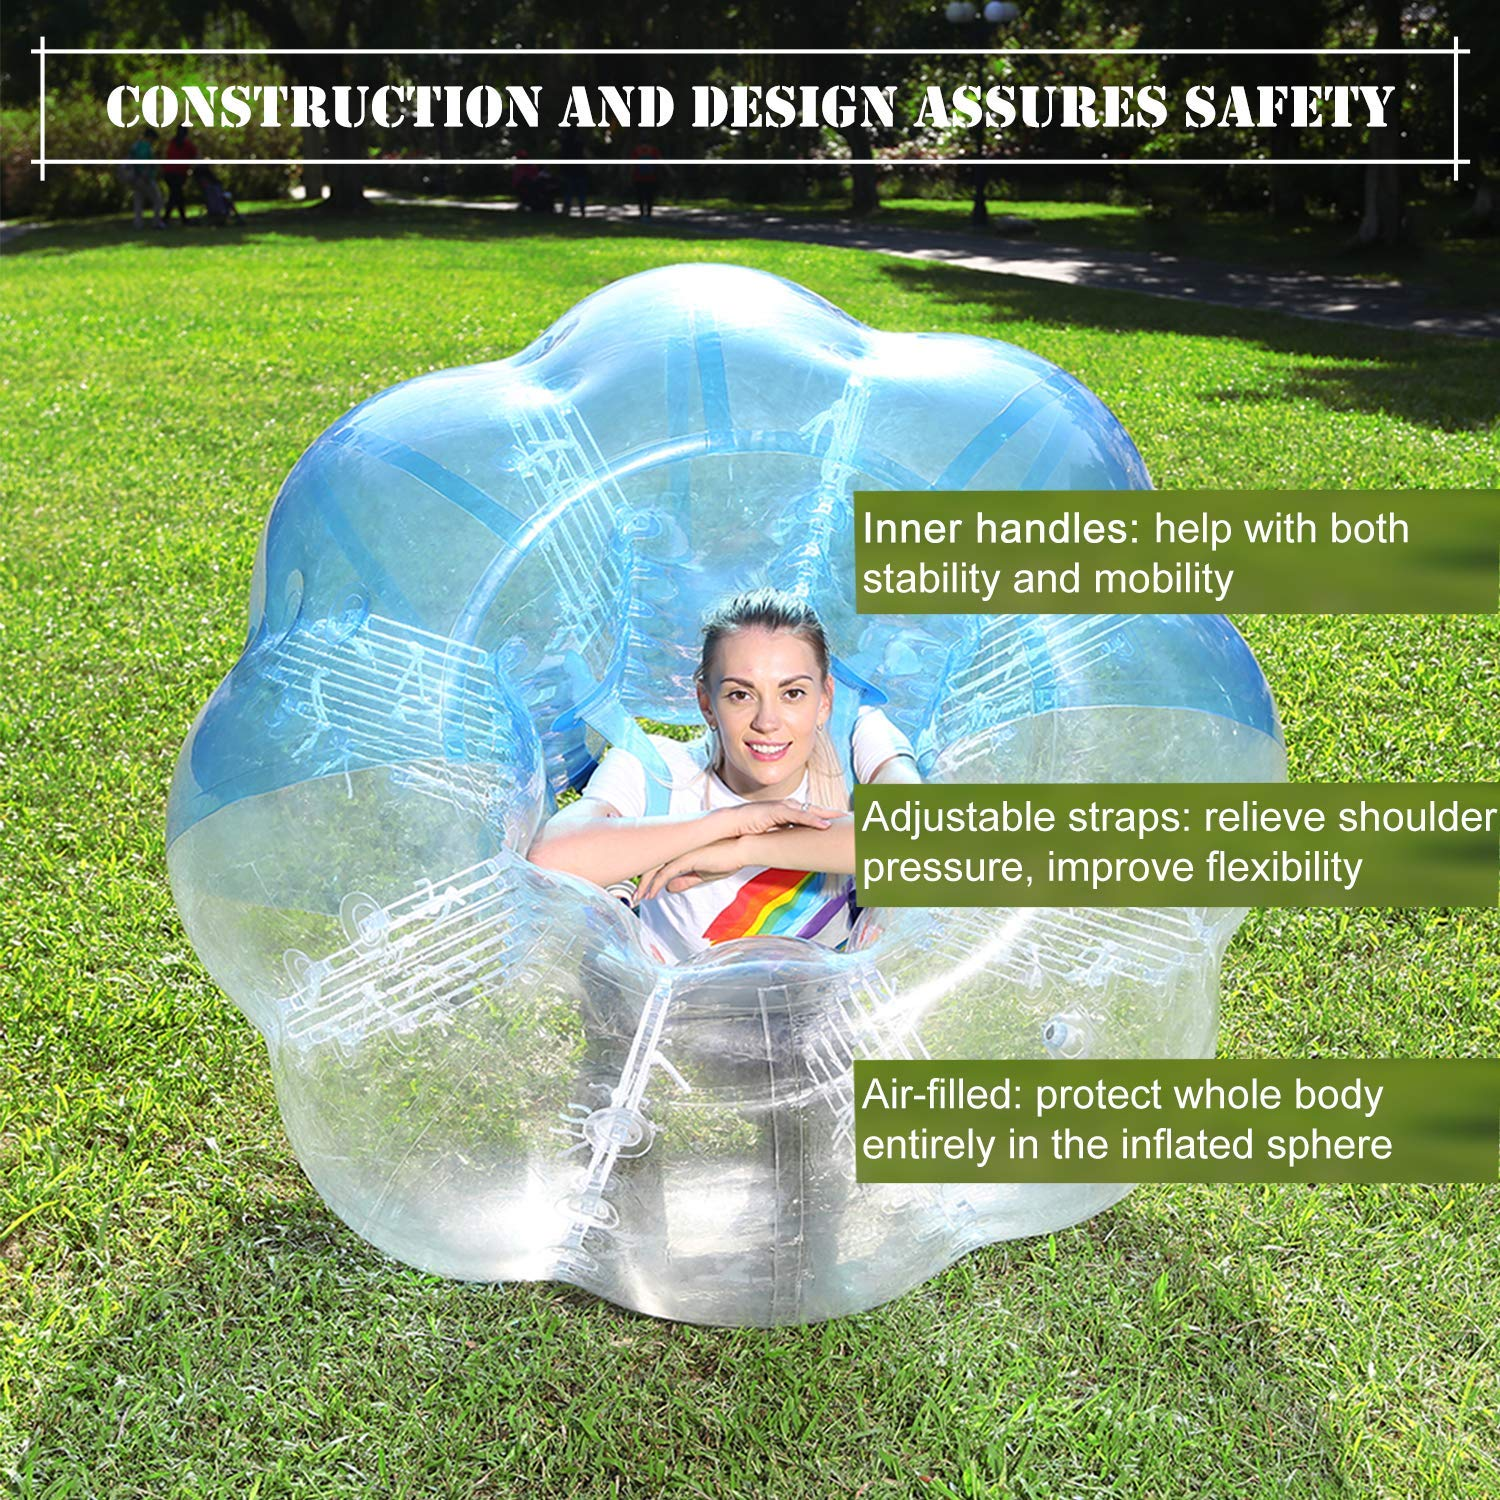 Inflatable Bumper Balls for Adults//Kids Bumper Bubble Soccer Ball W//Ultra Thick PVC Human Hamster Ball 5 ft //4 ft